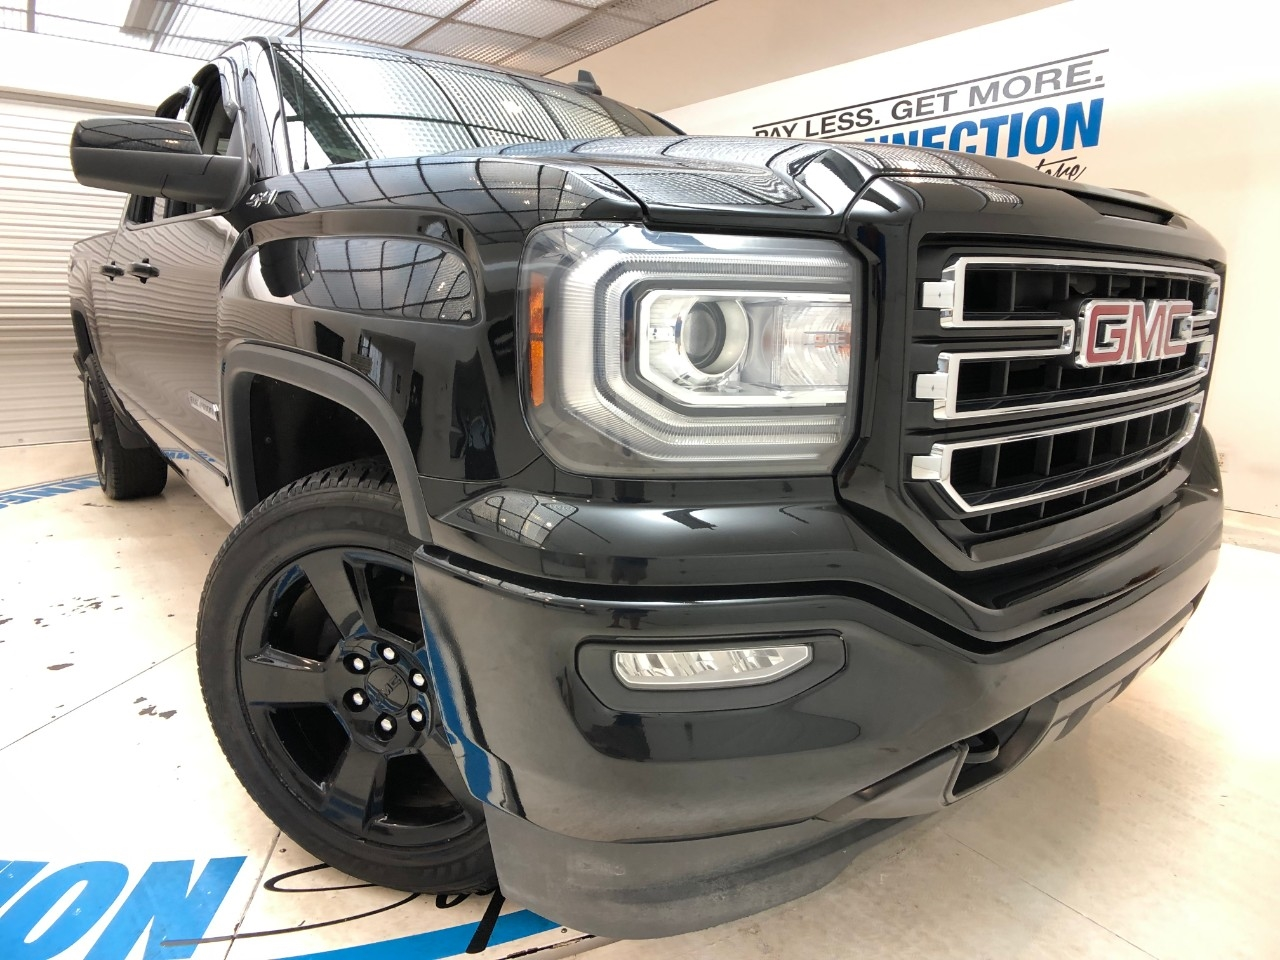 Pre-Owned 2016 GMC Sierra 1500 4WD DOUBLE CAB ELEVATION EDITION.